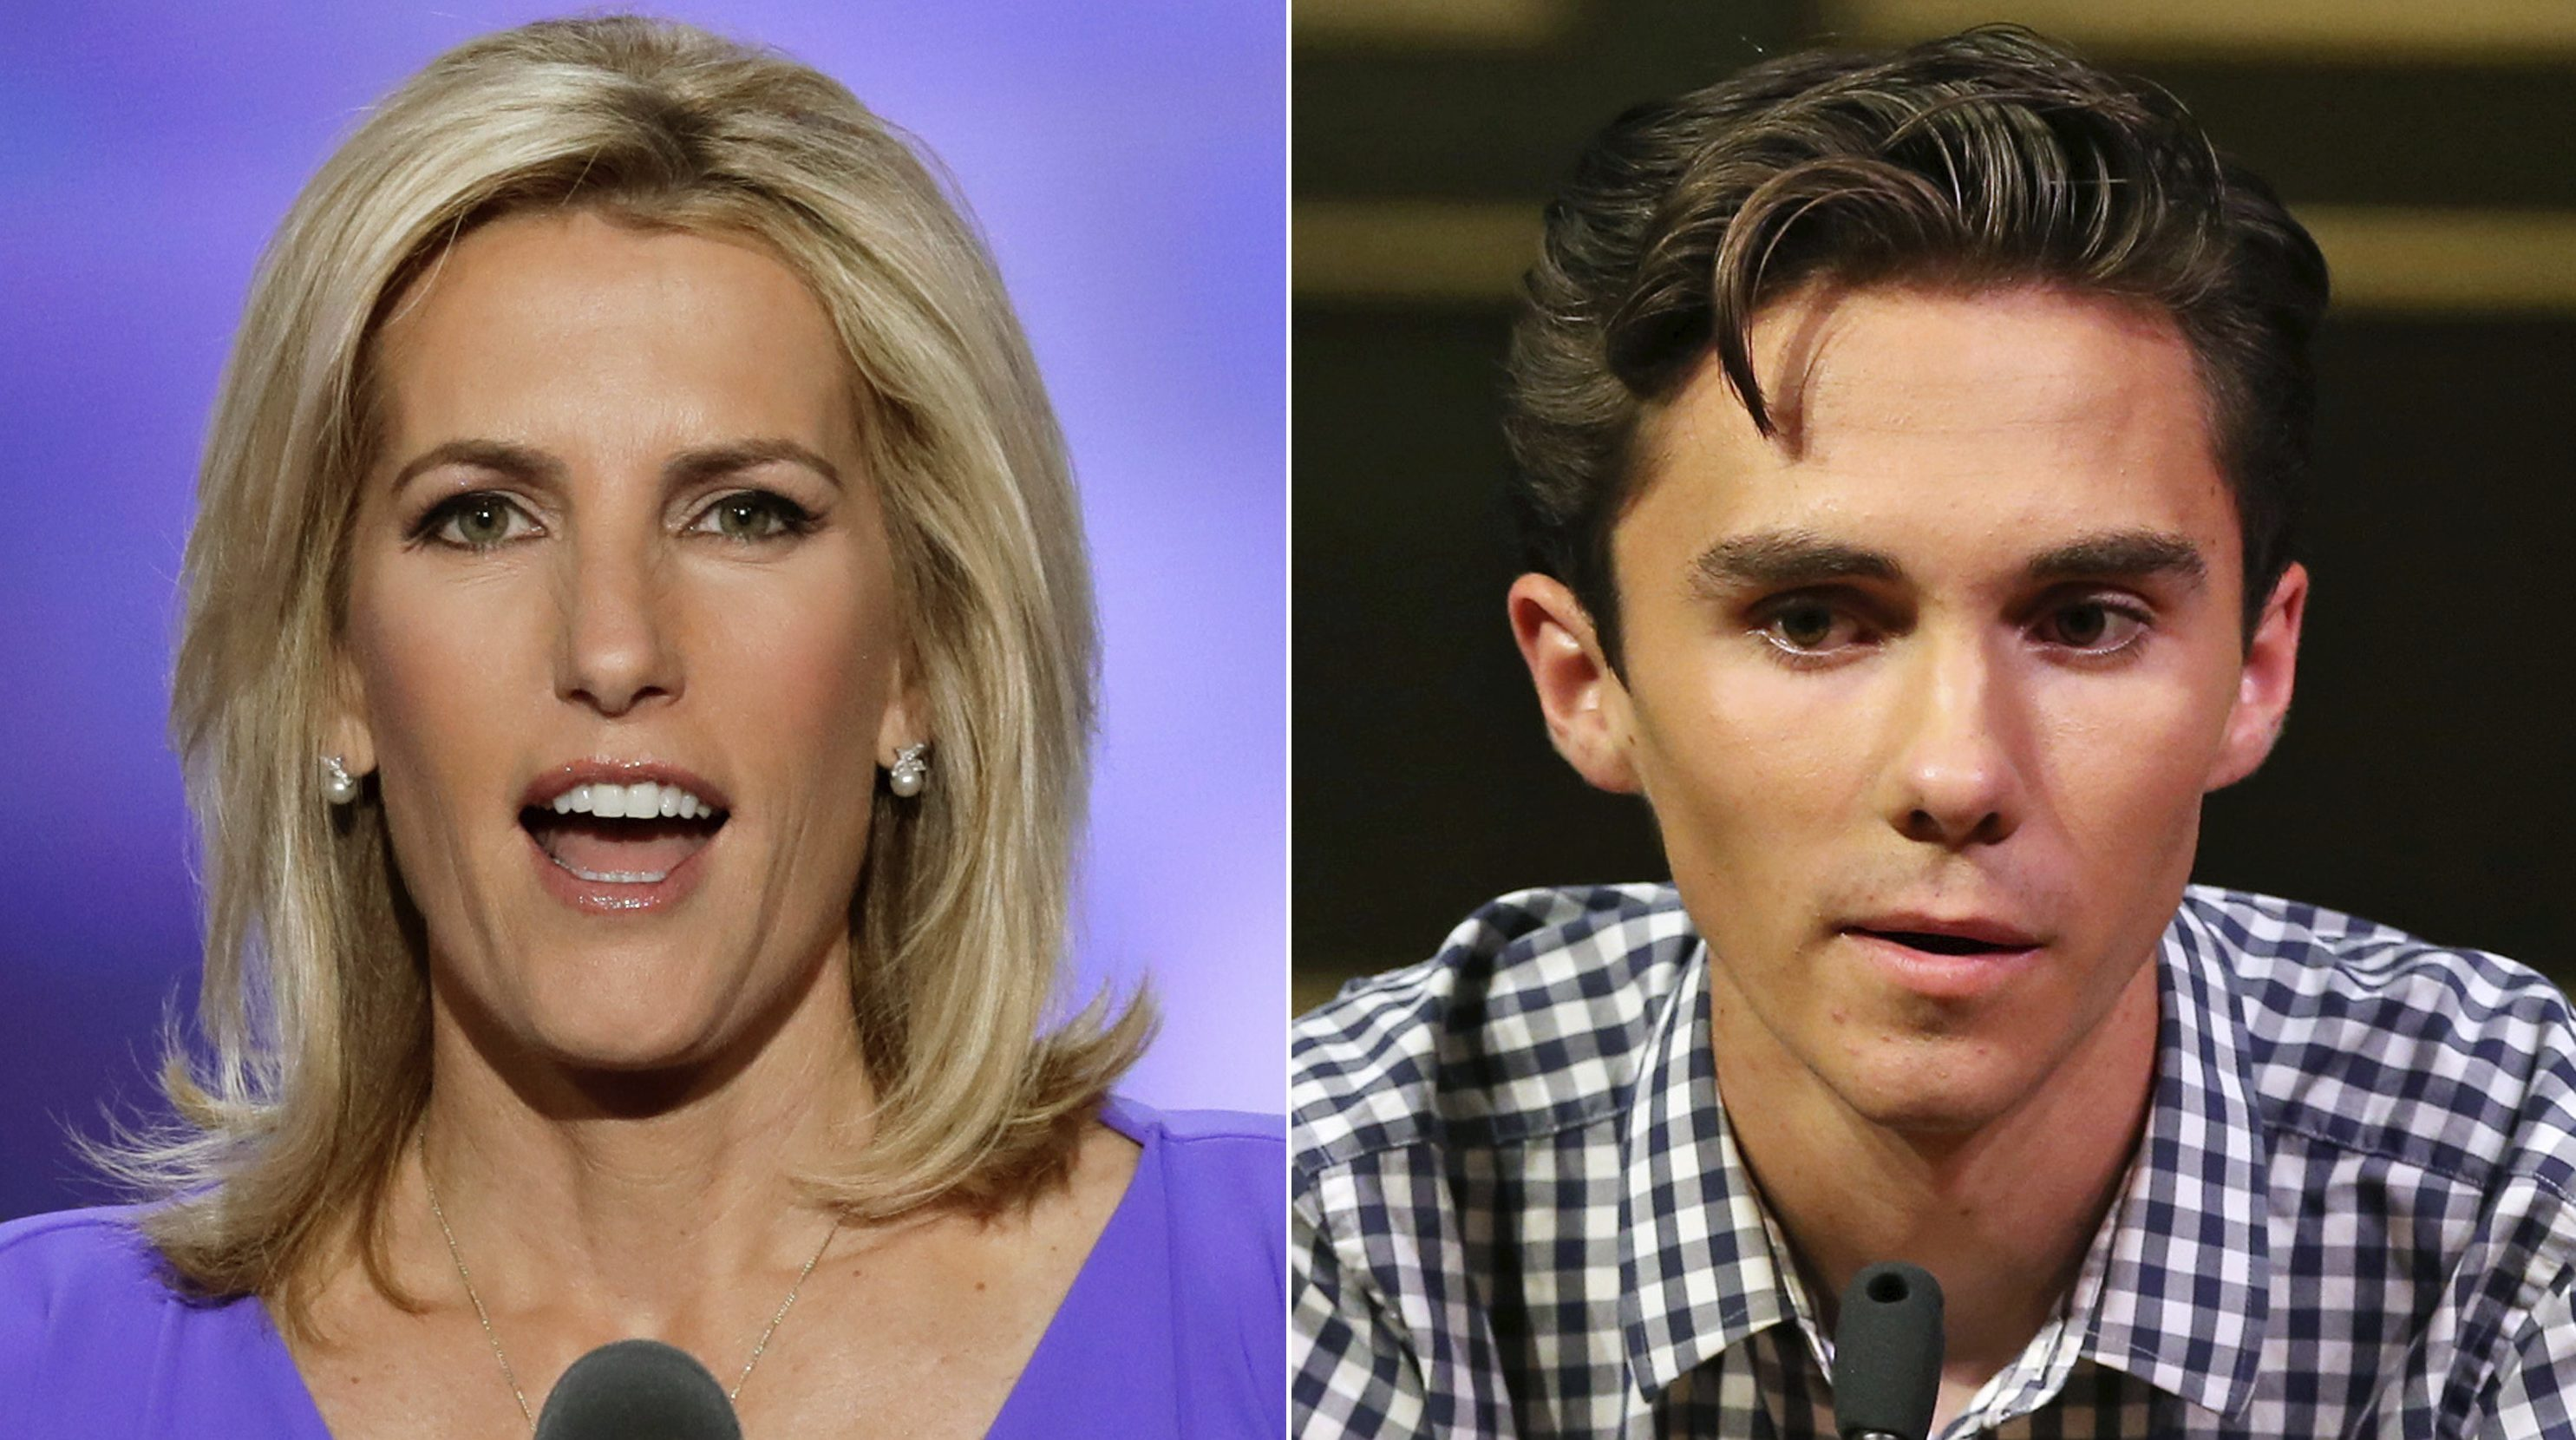 Bill Maher Says David Hogg is 'Bullying' Laura Ingraham with Boycott